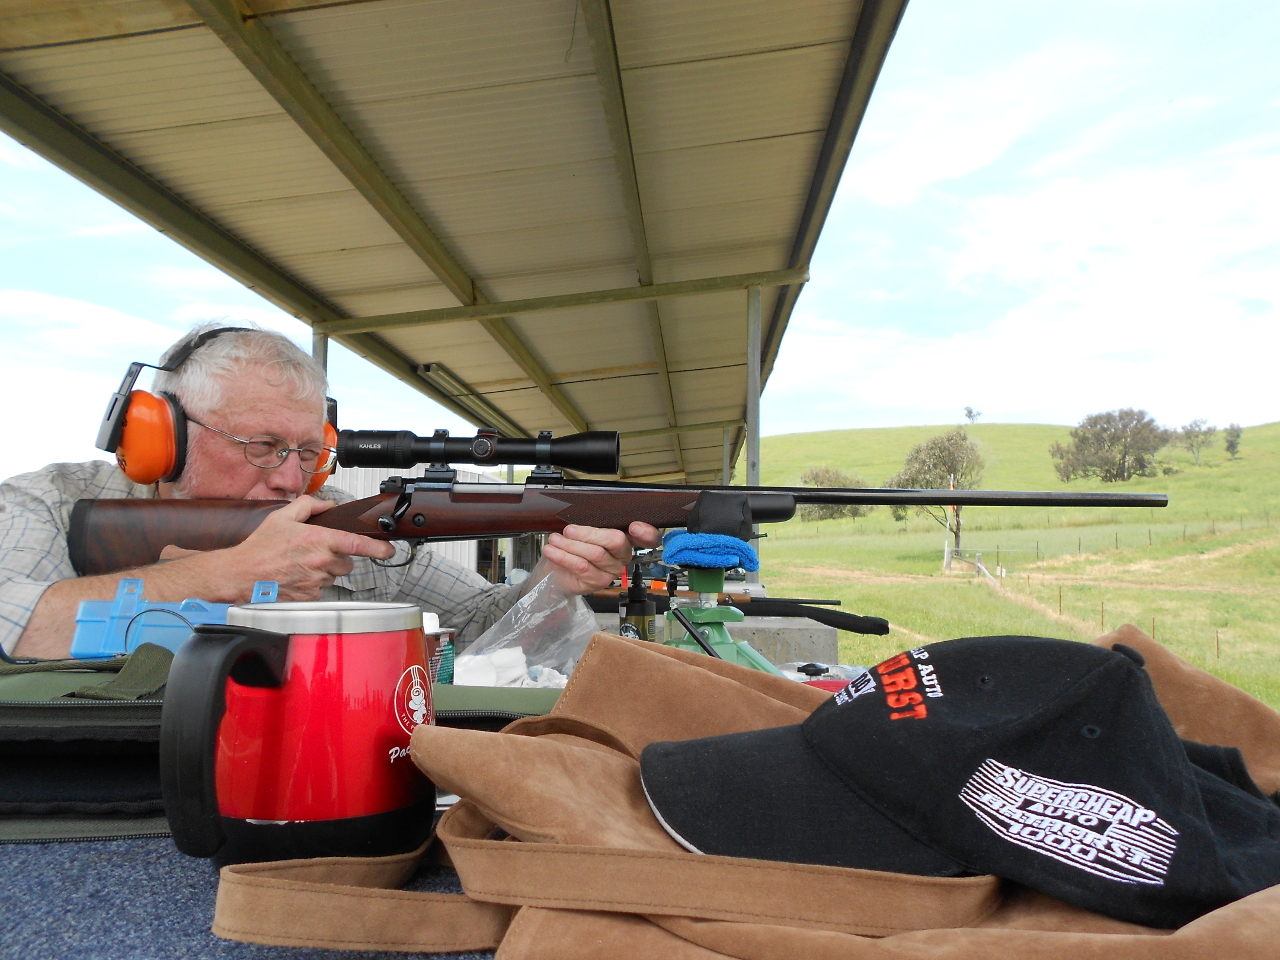 A rifle with the recoil of something in the .300 magnum class on up may need a steadying hand under the fore-end in case it jumps off the rest. The barrel break-in process is quite fun to do but takes time so a nice cup of coffee or tea at regular intervals is good to have.